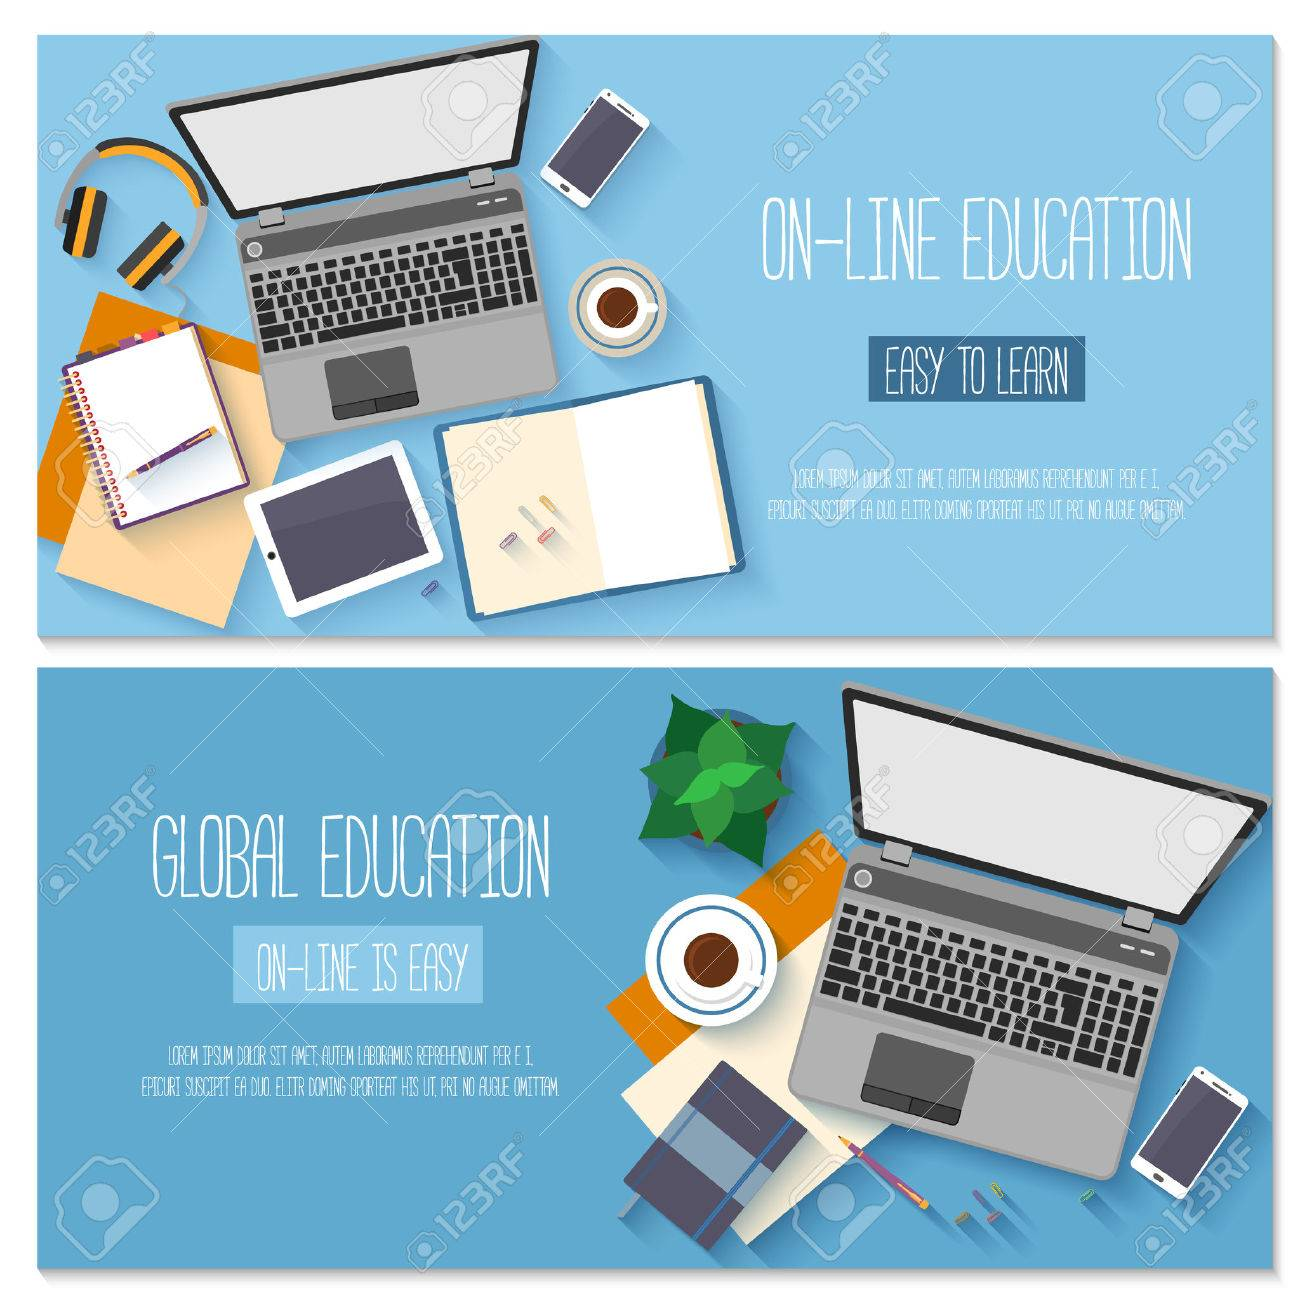 Flat design for online education, training courses, e-learning, distance trainings. Stock Vector - 46992856